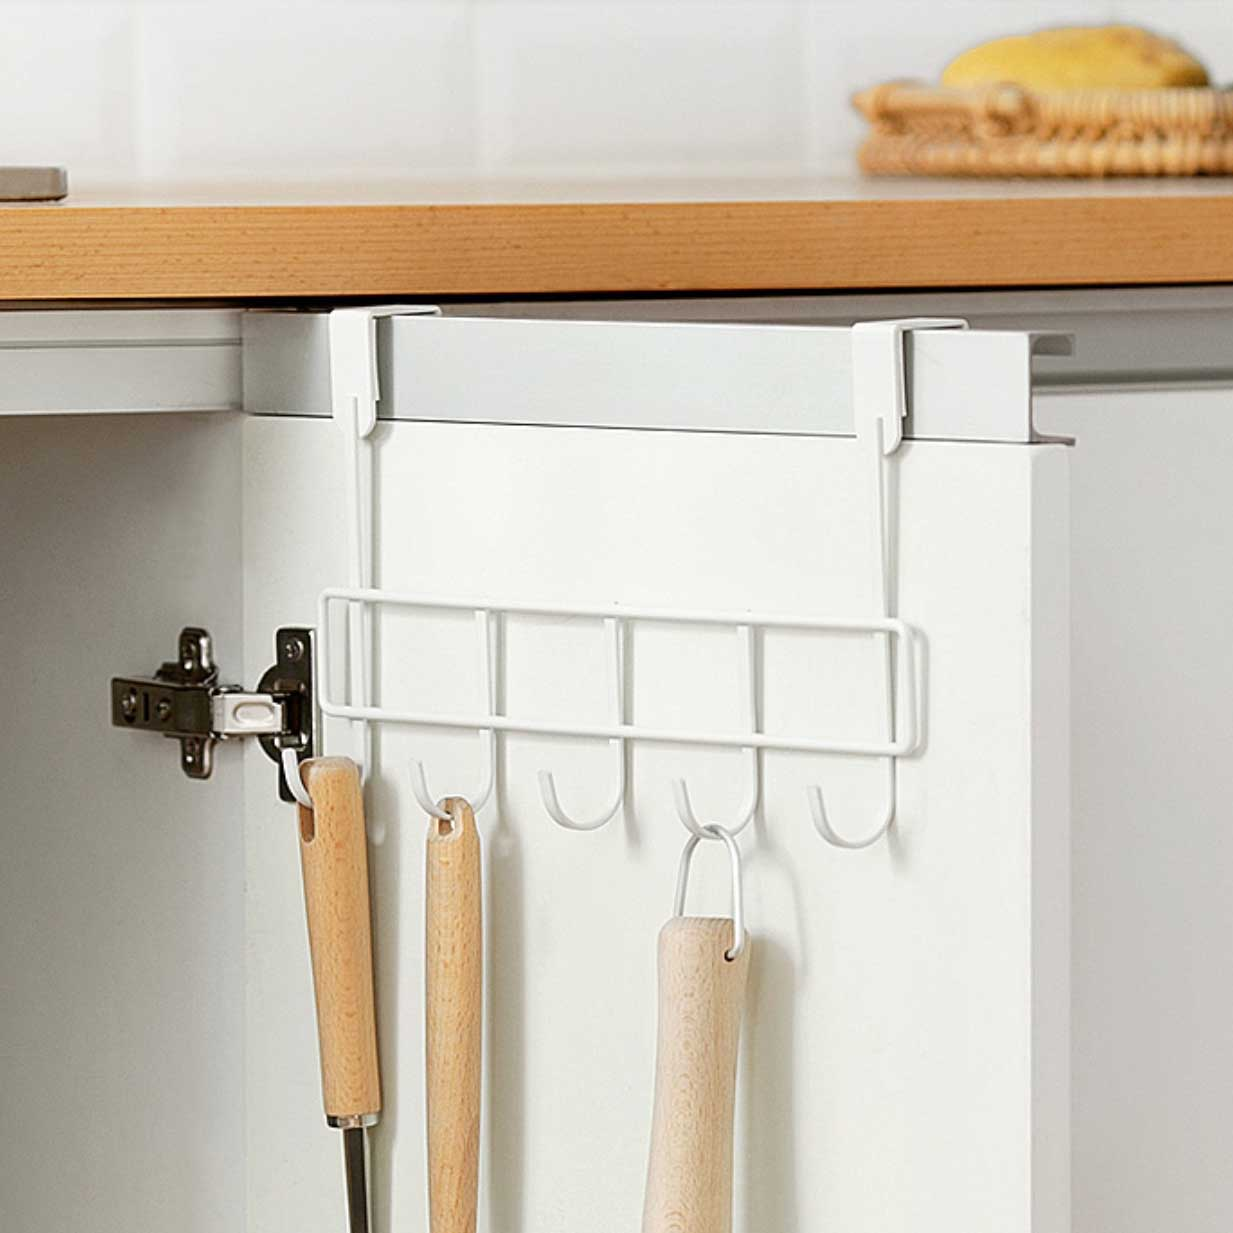 Kitchen Hanging Cabinet: Horizontal Cabinet Hanging Hooks